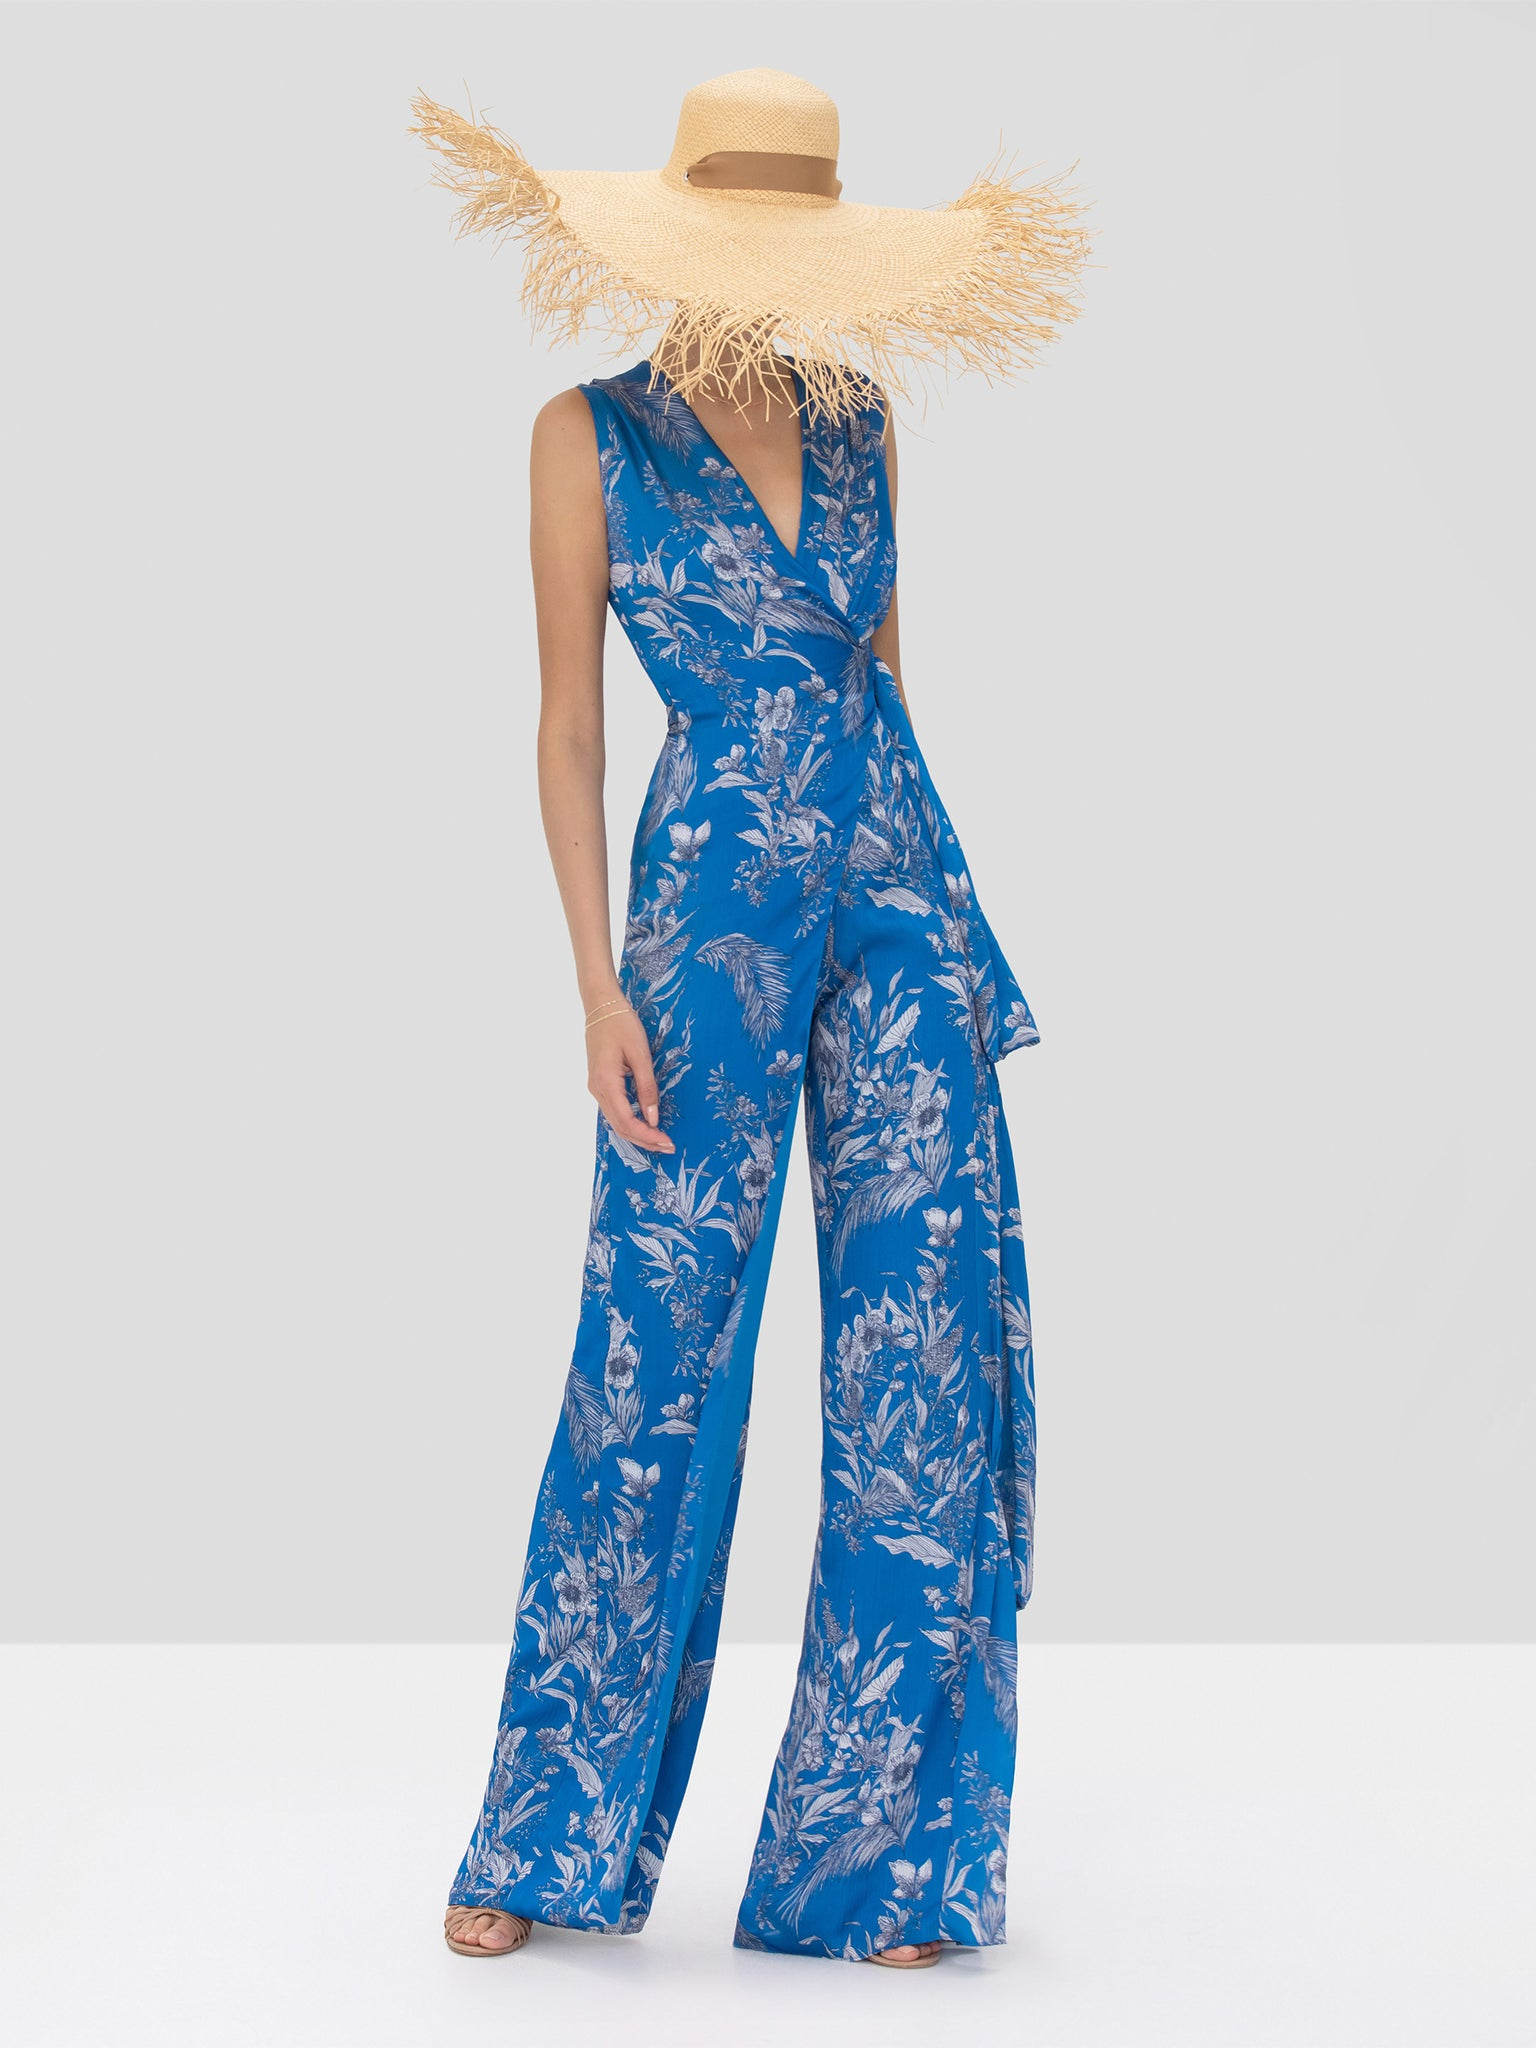 Alexis Kamiko Jumpsuit in Blue Palm from Spring Summer 2020 Collection